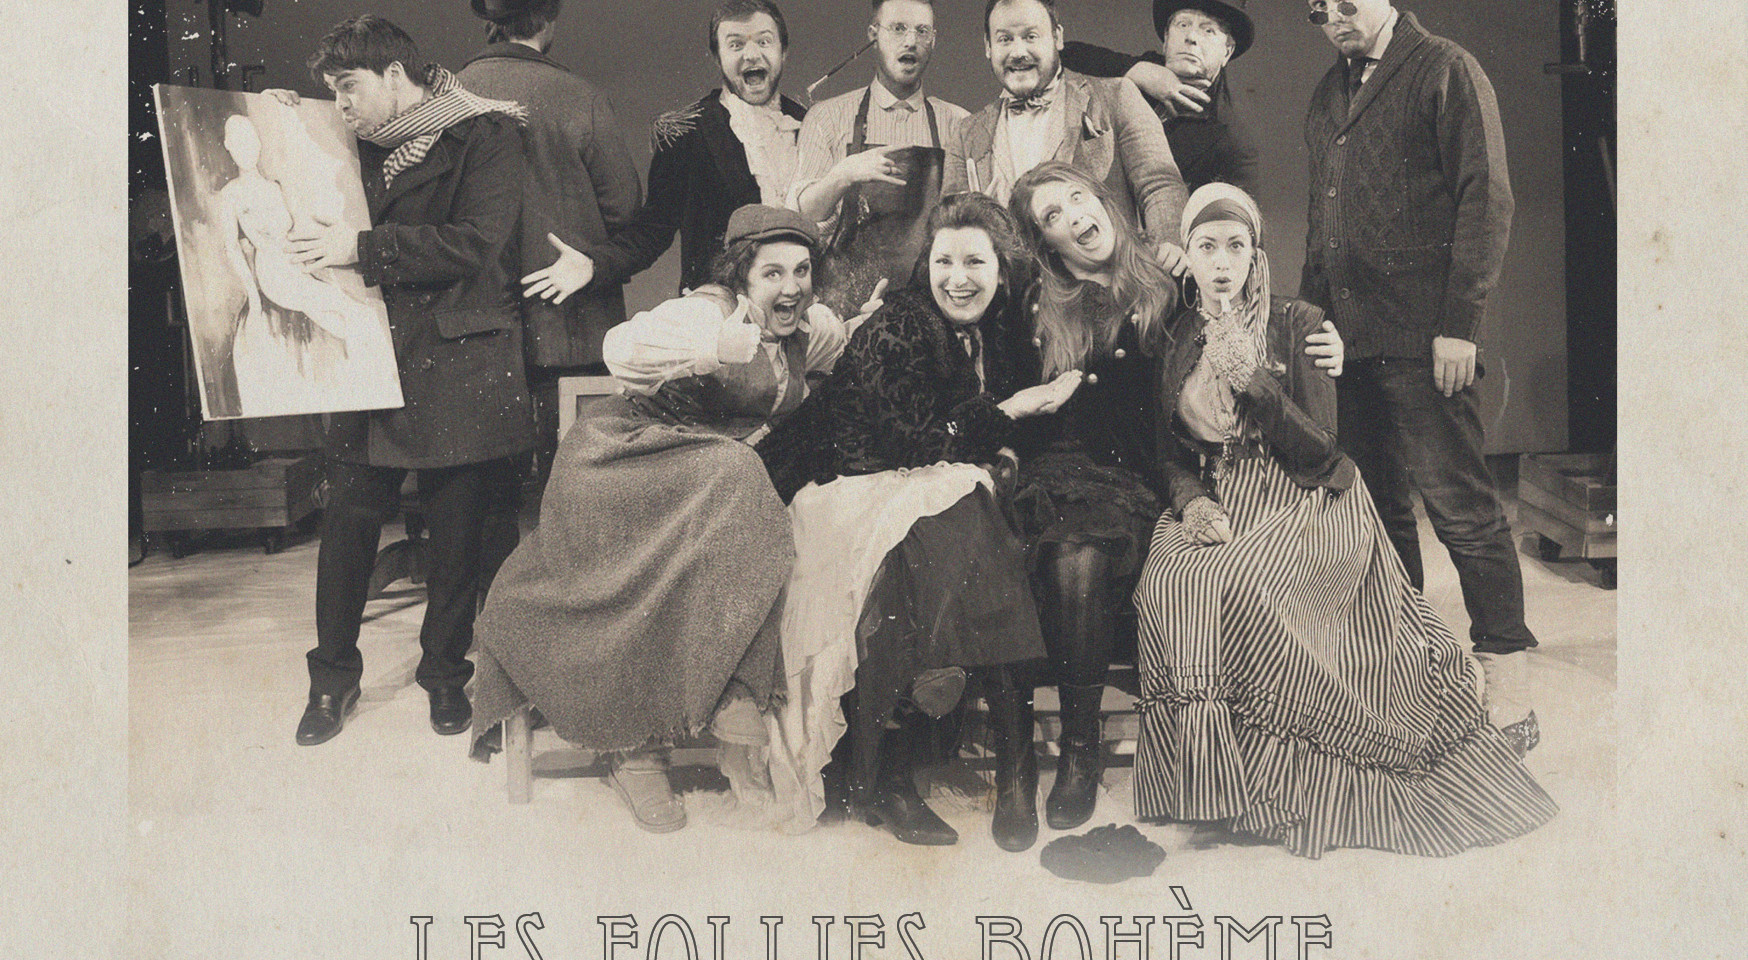 A nostalgic image from our 'production of La bohème'